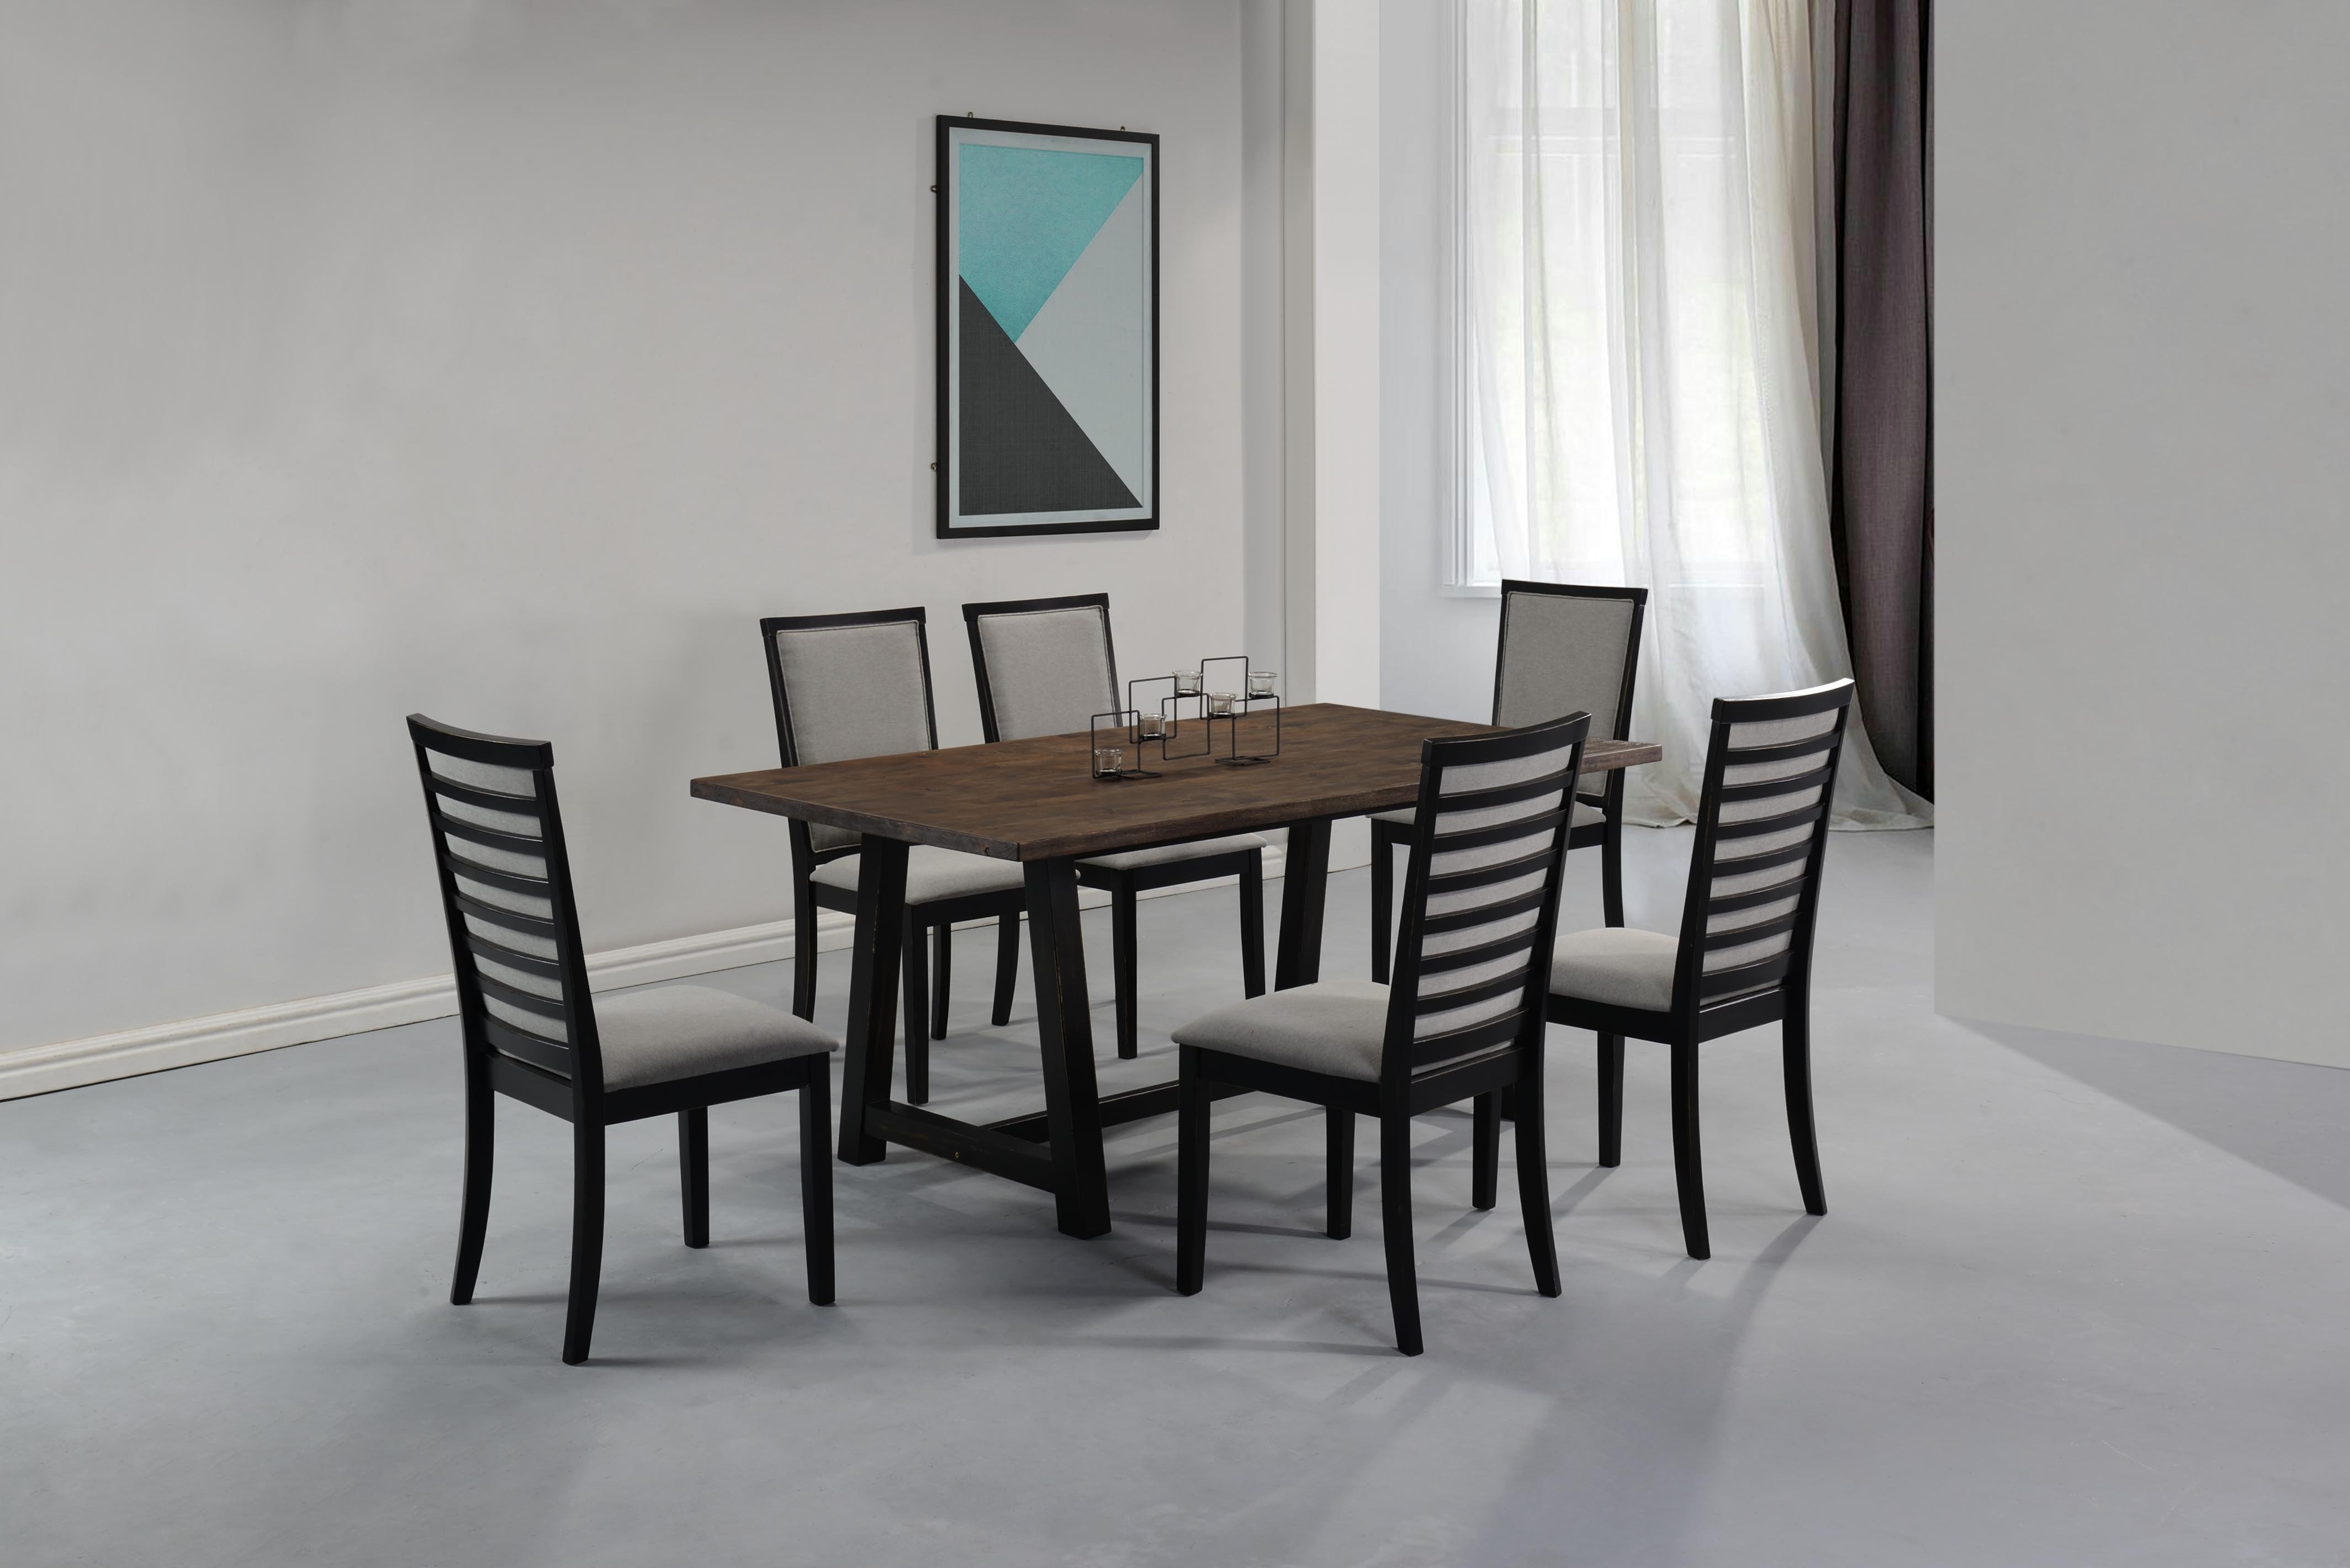 Astounding Furniture Exporters Manufacturers Malaysia Asia Download Free Architecture Designs Terstmadebymaigaardcom